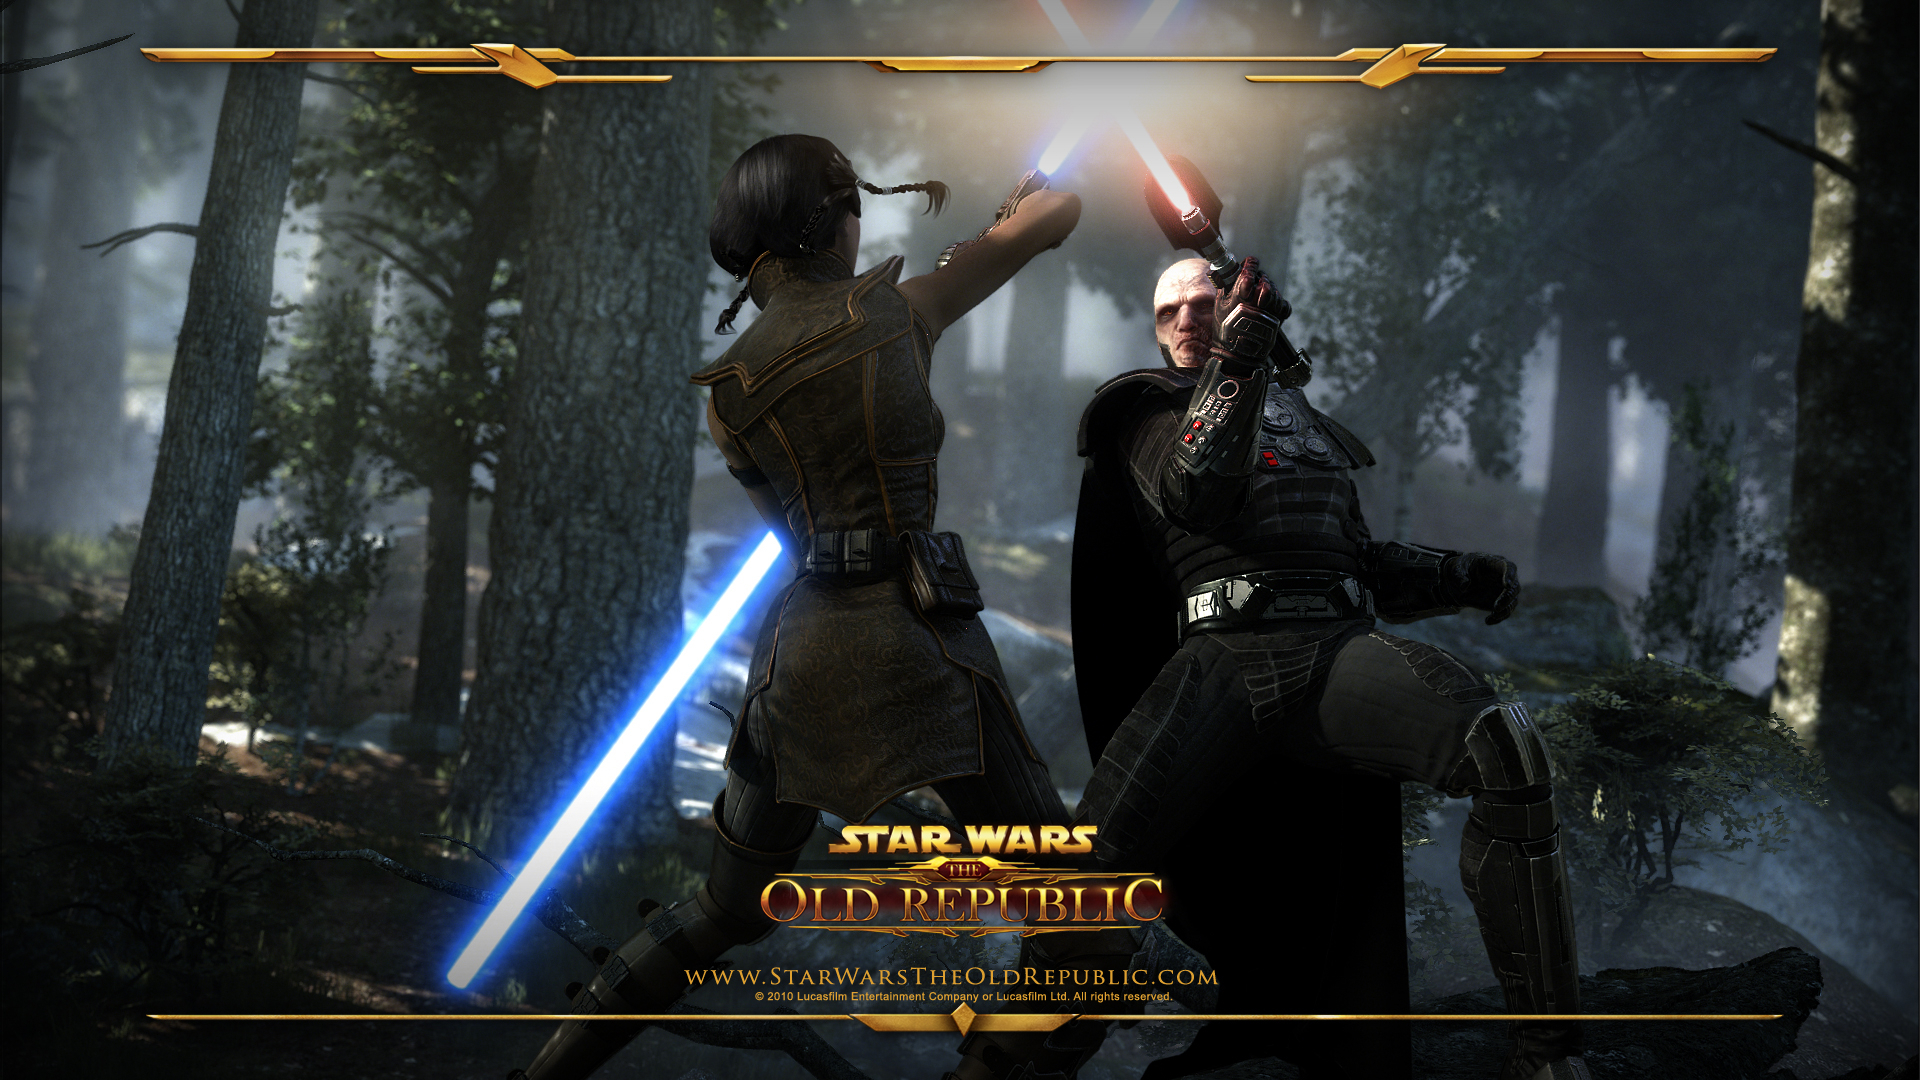 fotos star wars star wars the old republic spiele 1920x1080